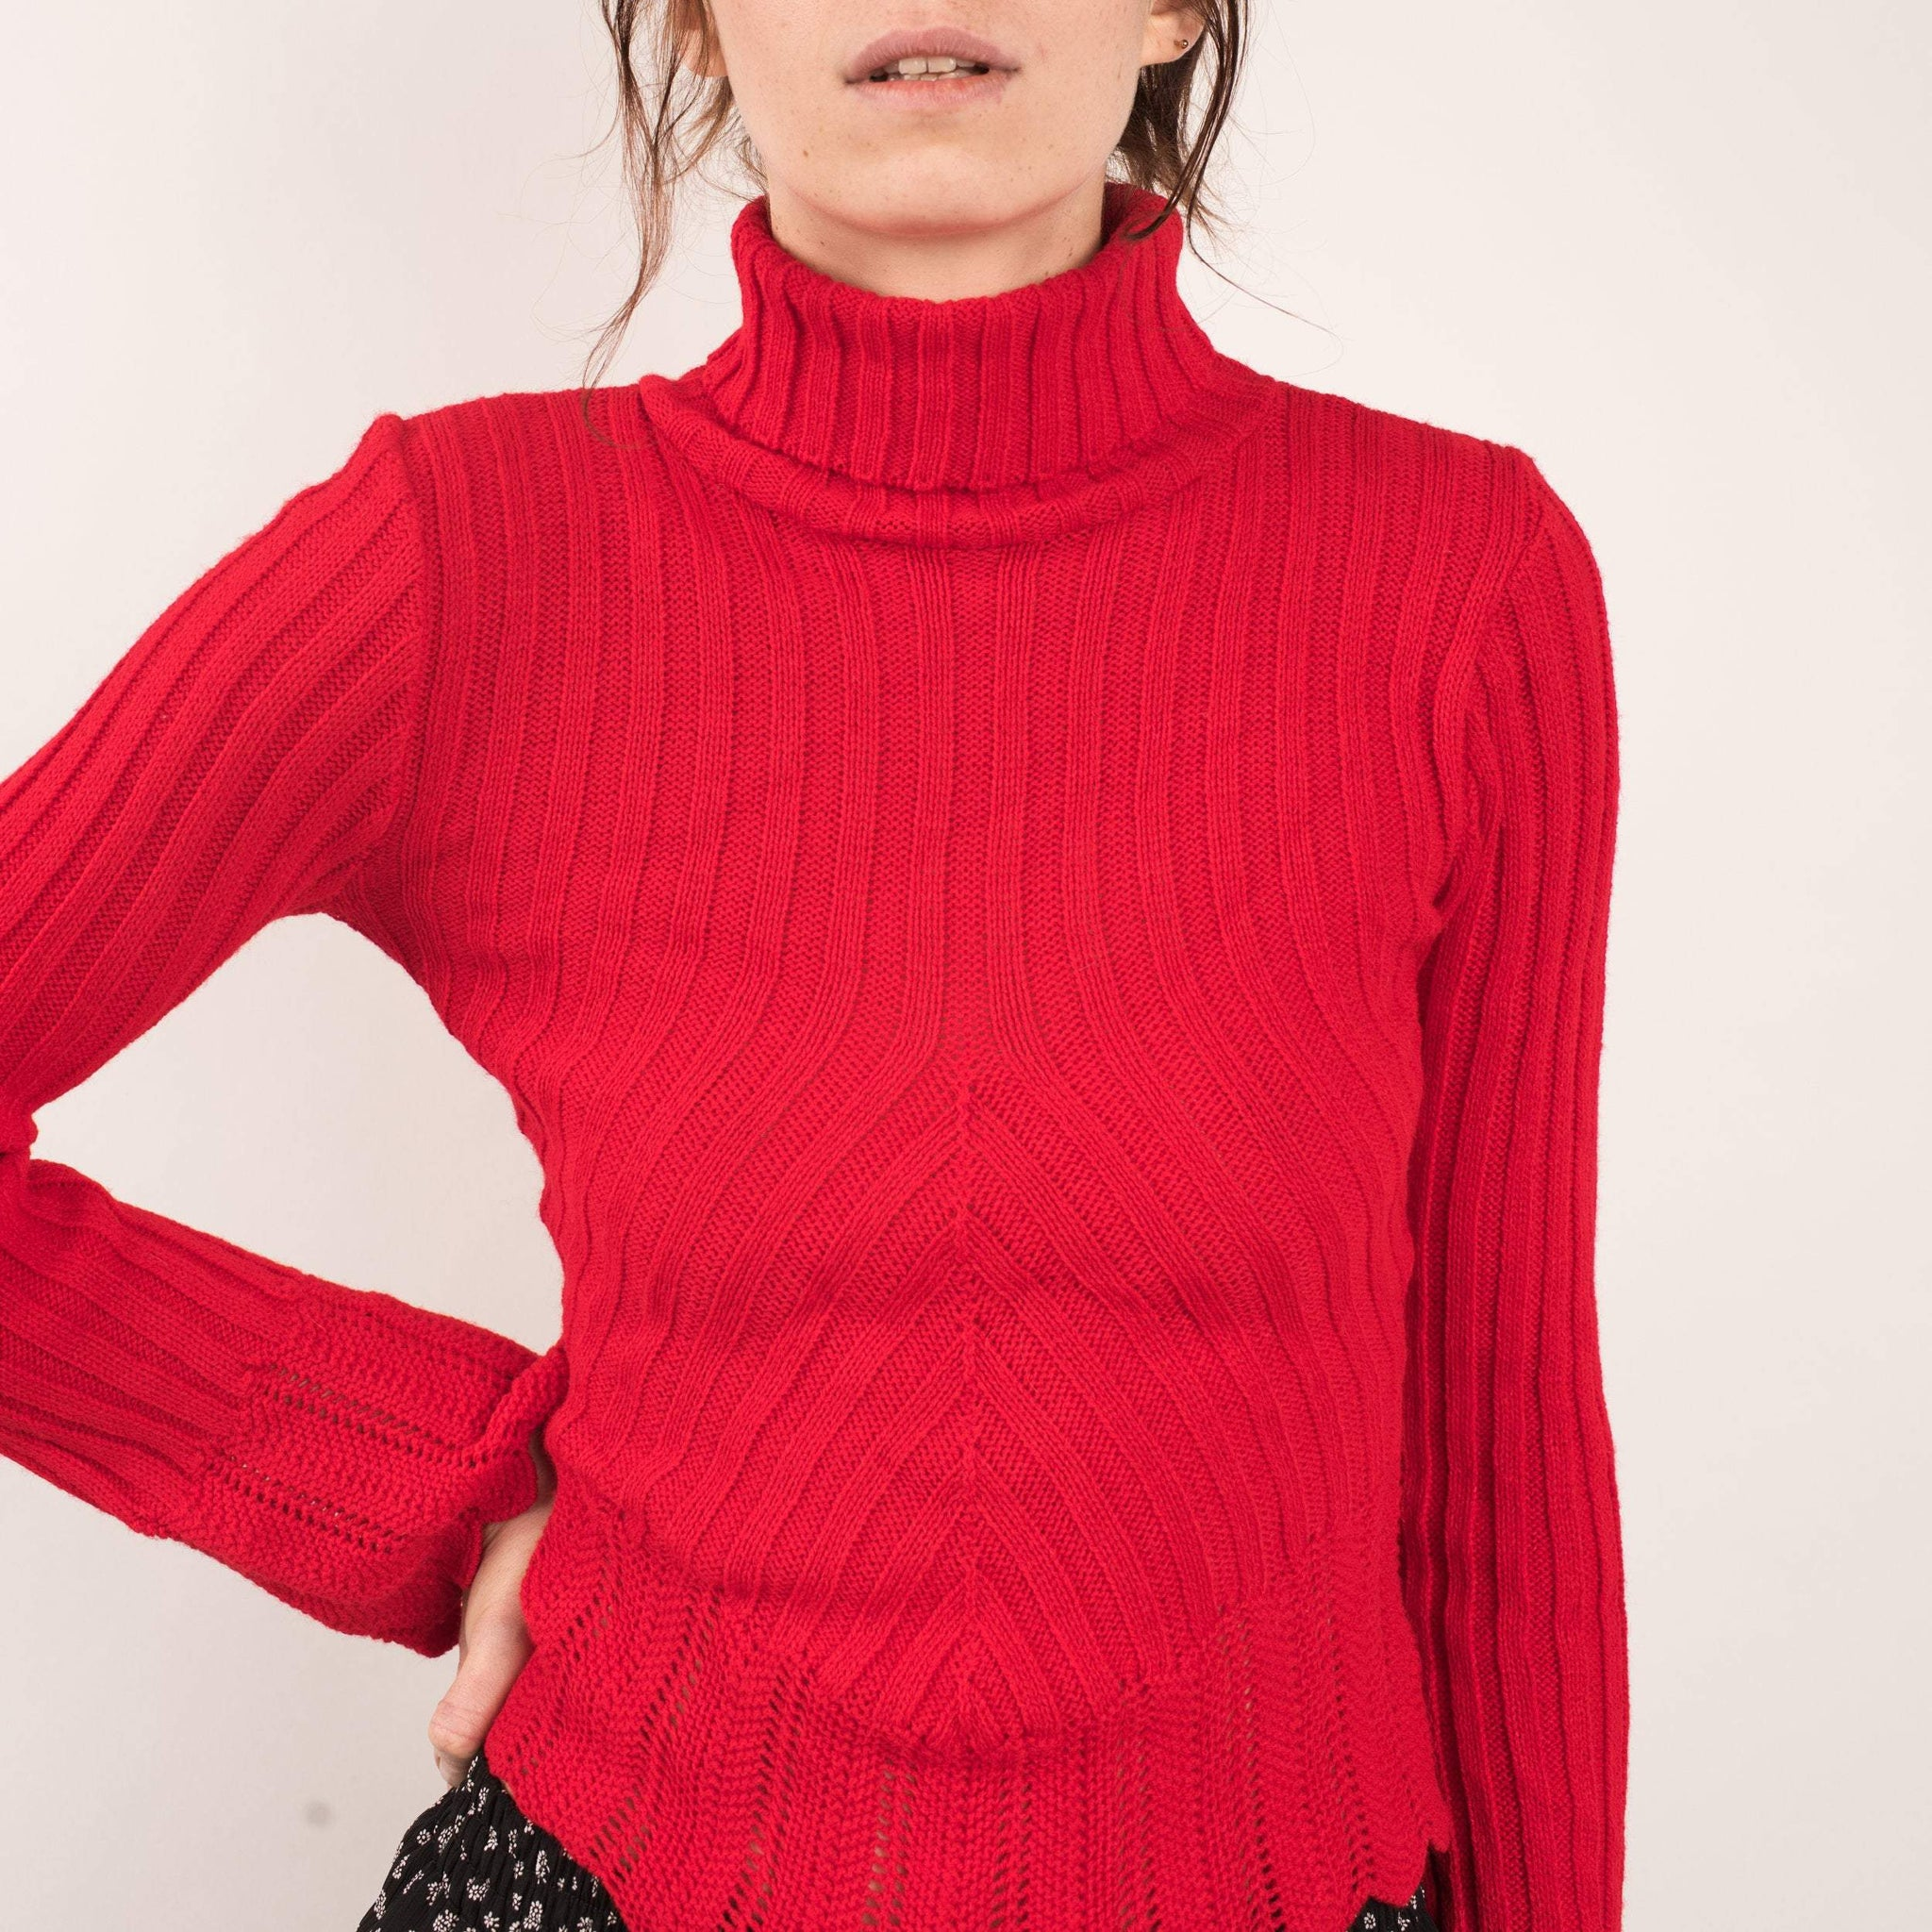 Vintage Fire Red Turtleneck Sweater / XS/S